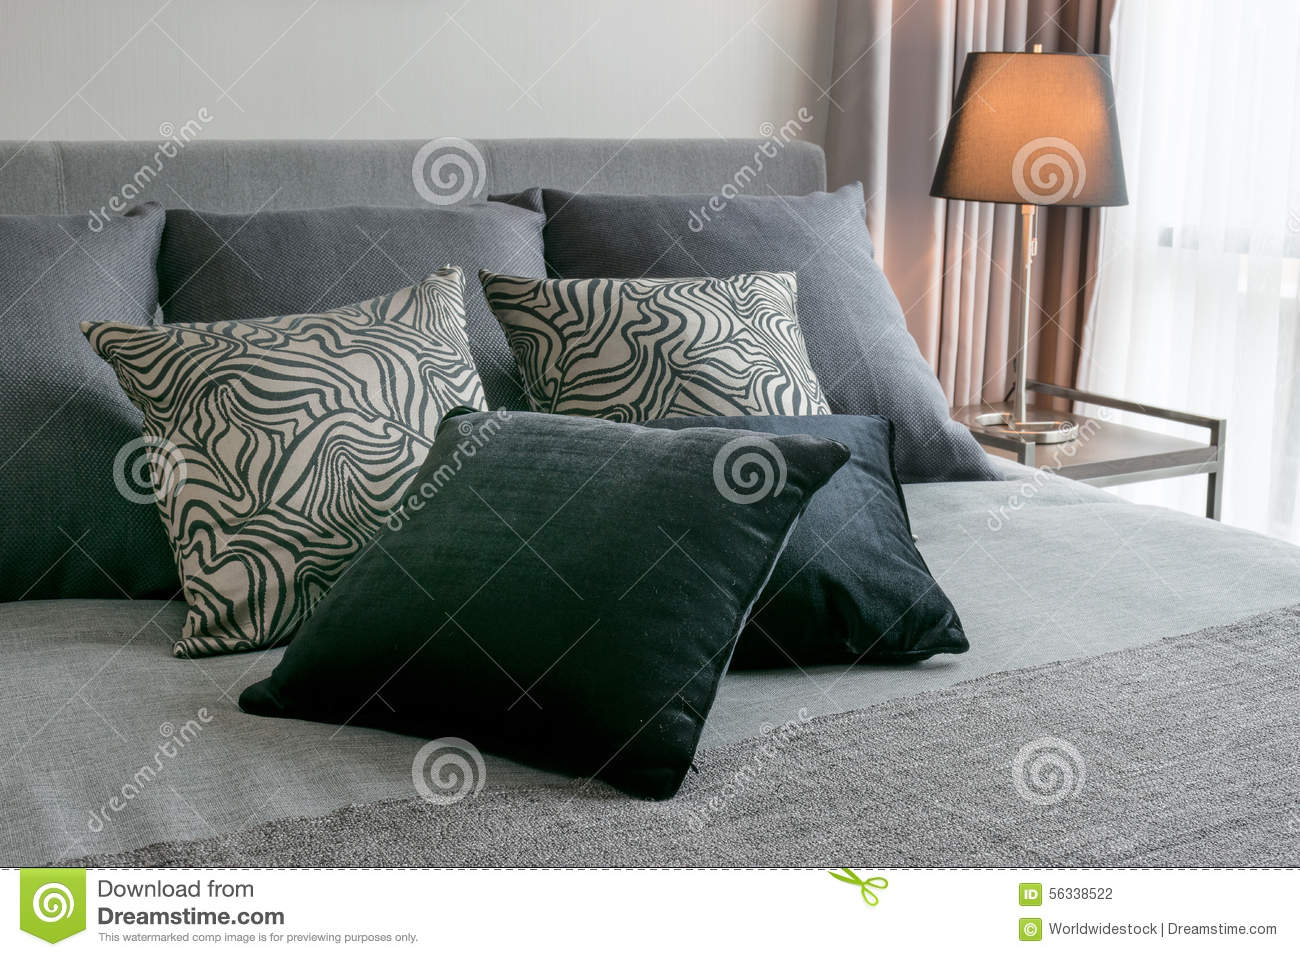 Bedroom Interior With Black Patterned Pillows Stock Photo - Image: 56338522